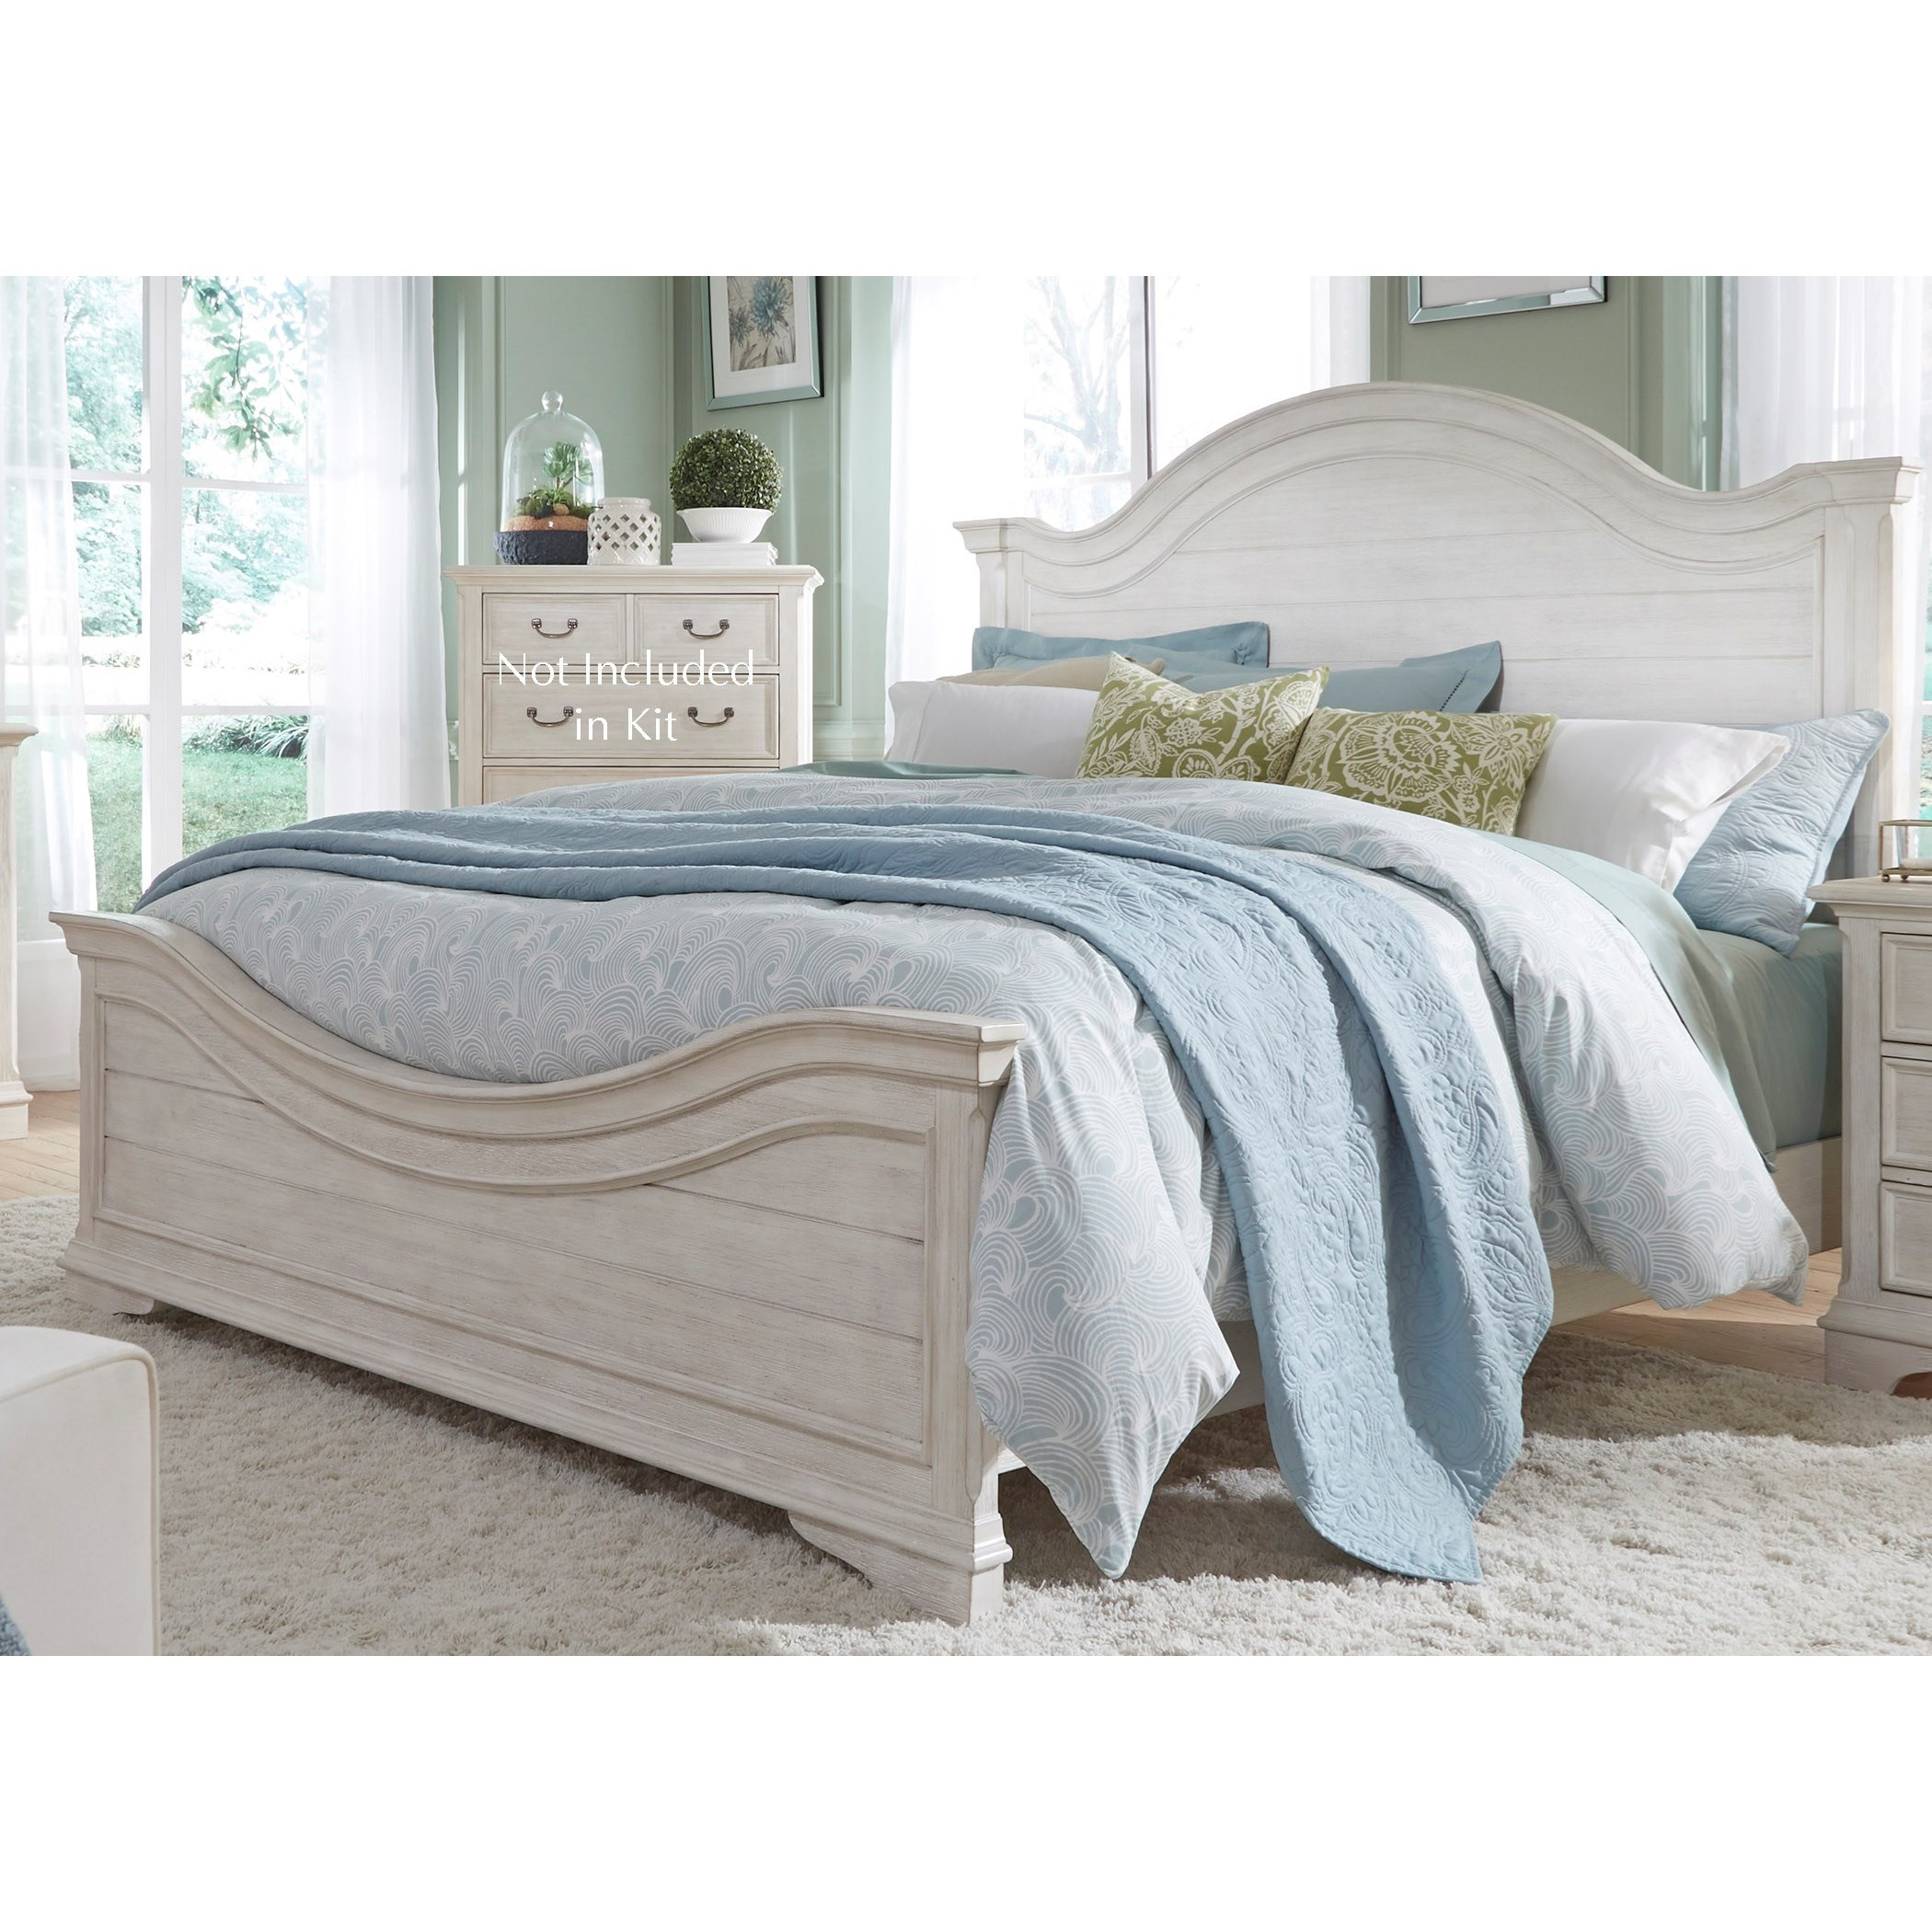 Bayside Bedroom King Panel Bed  by Libby at Walker's Furniture